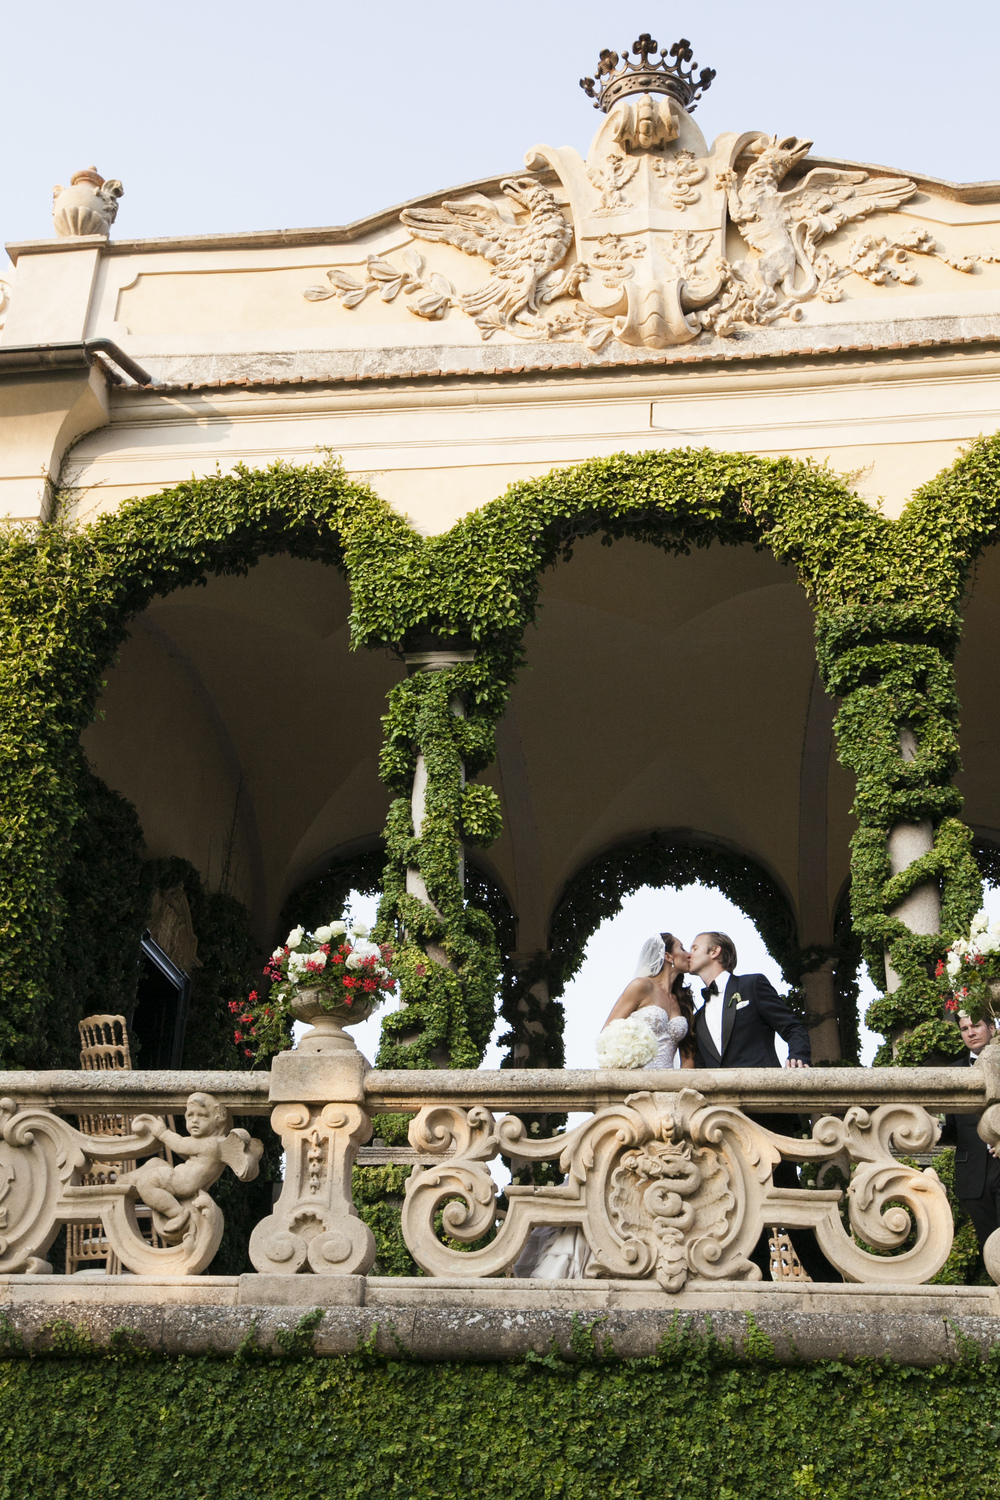 Ceci_New_York_Wedding_Lake_Como_Italy_Luxury_Style_Real_Bride_61.jpg